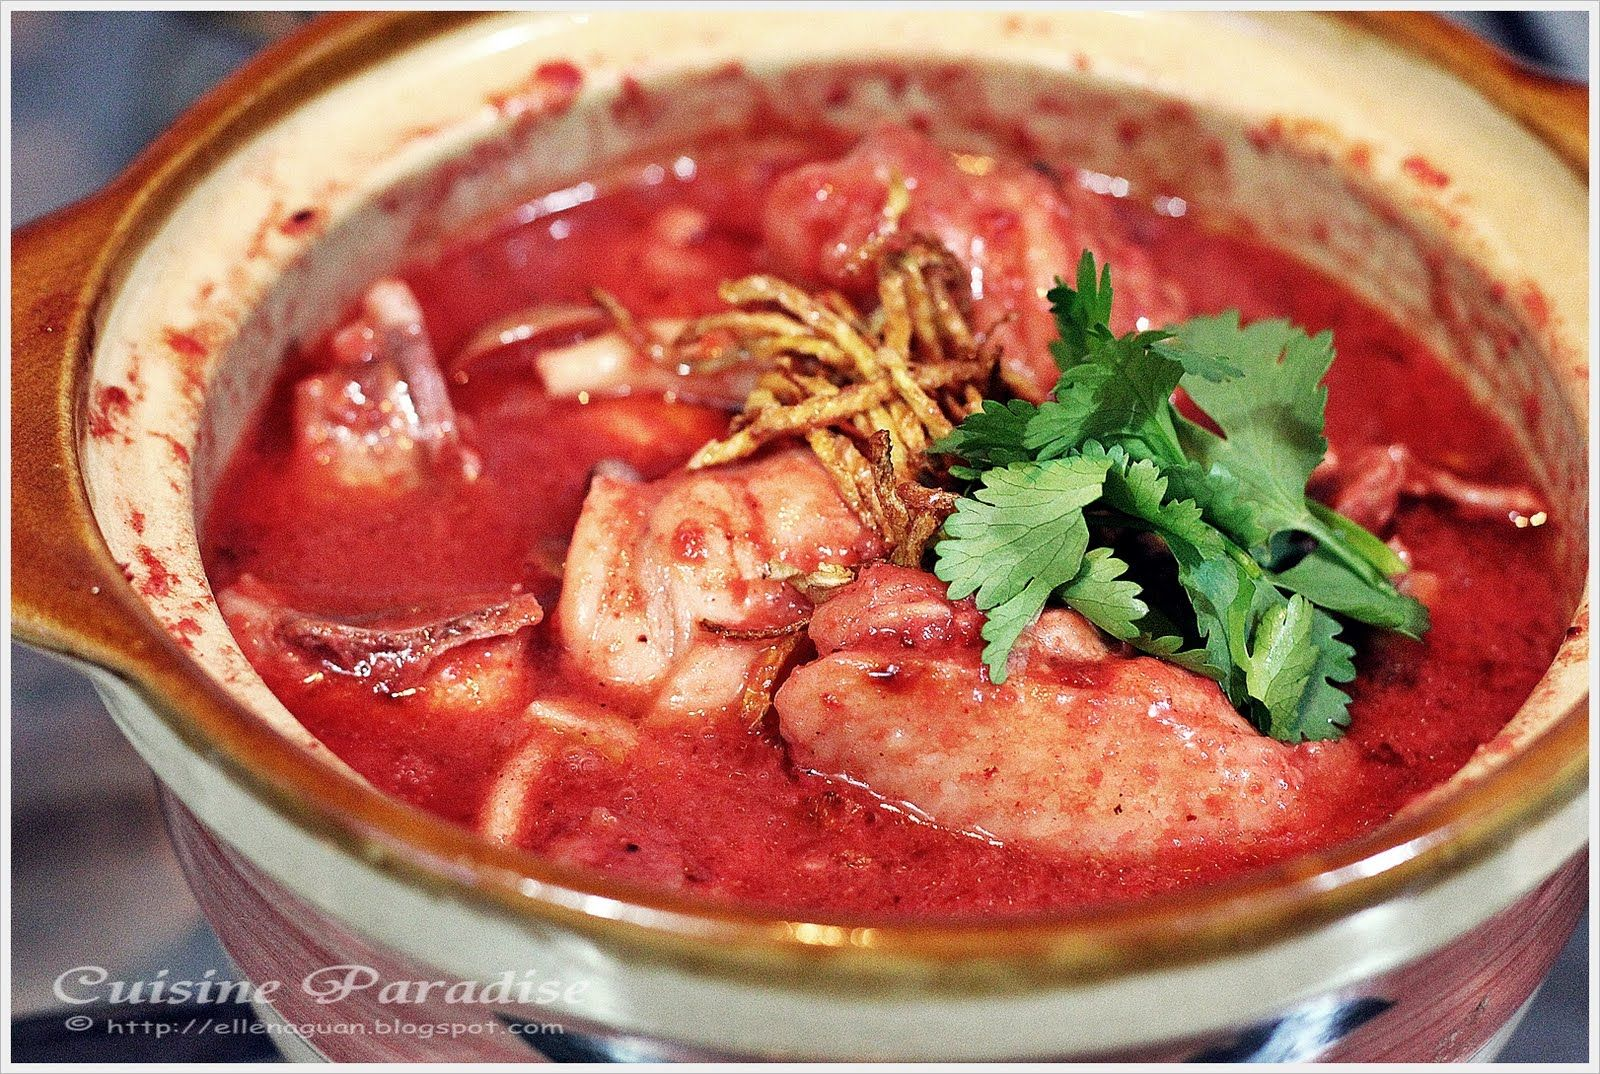 Cuisine Paradise Singapore Food Blog Recipes Reviews And Travel Chicken With Red Glutinous Rice Wine Lees Hong Za Red Wine Chicken Food Confinement Food